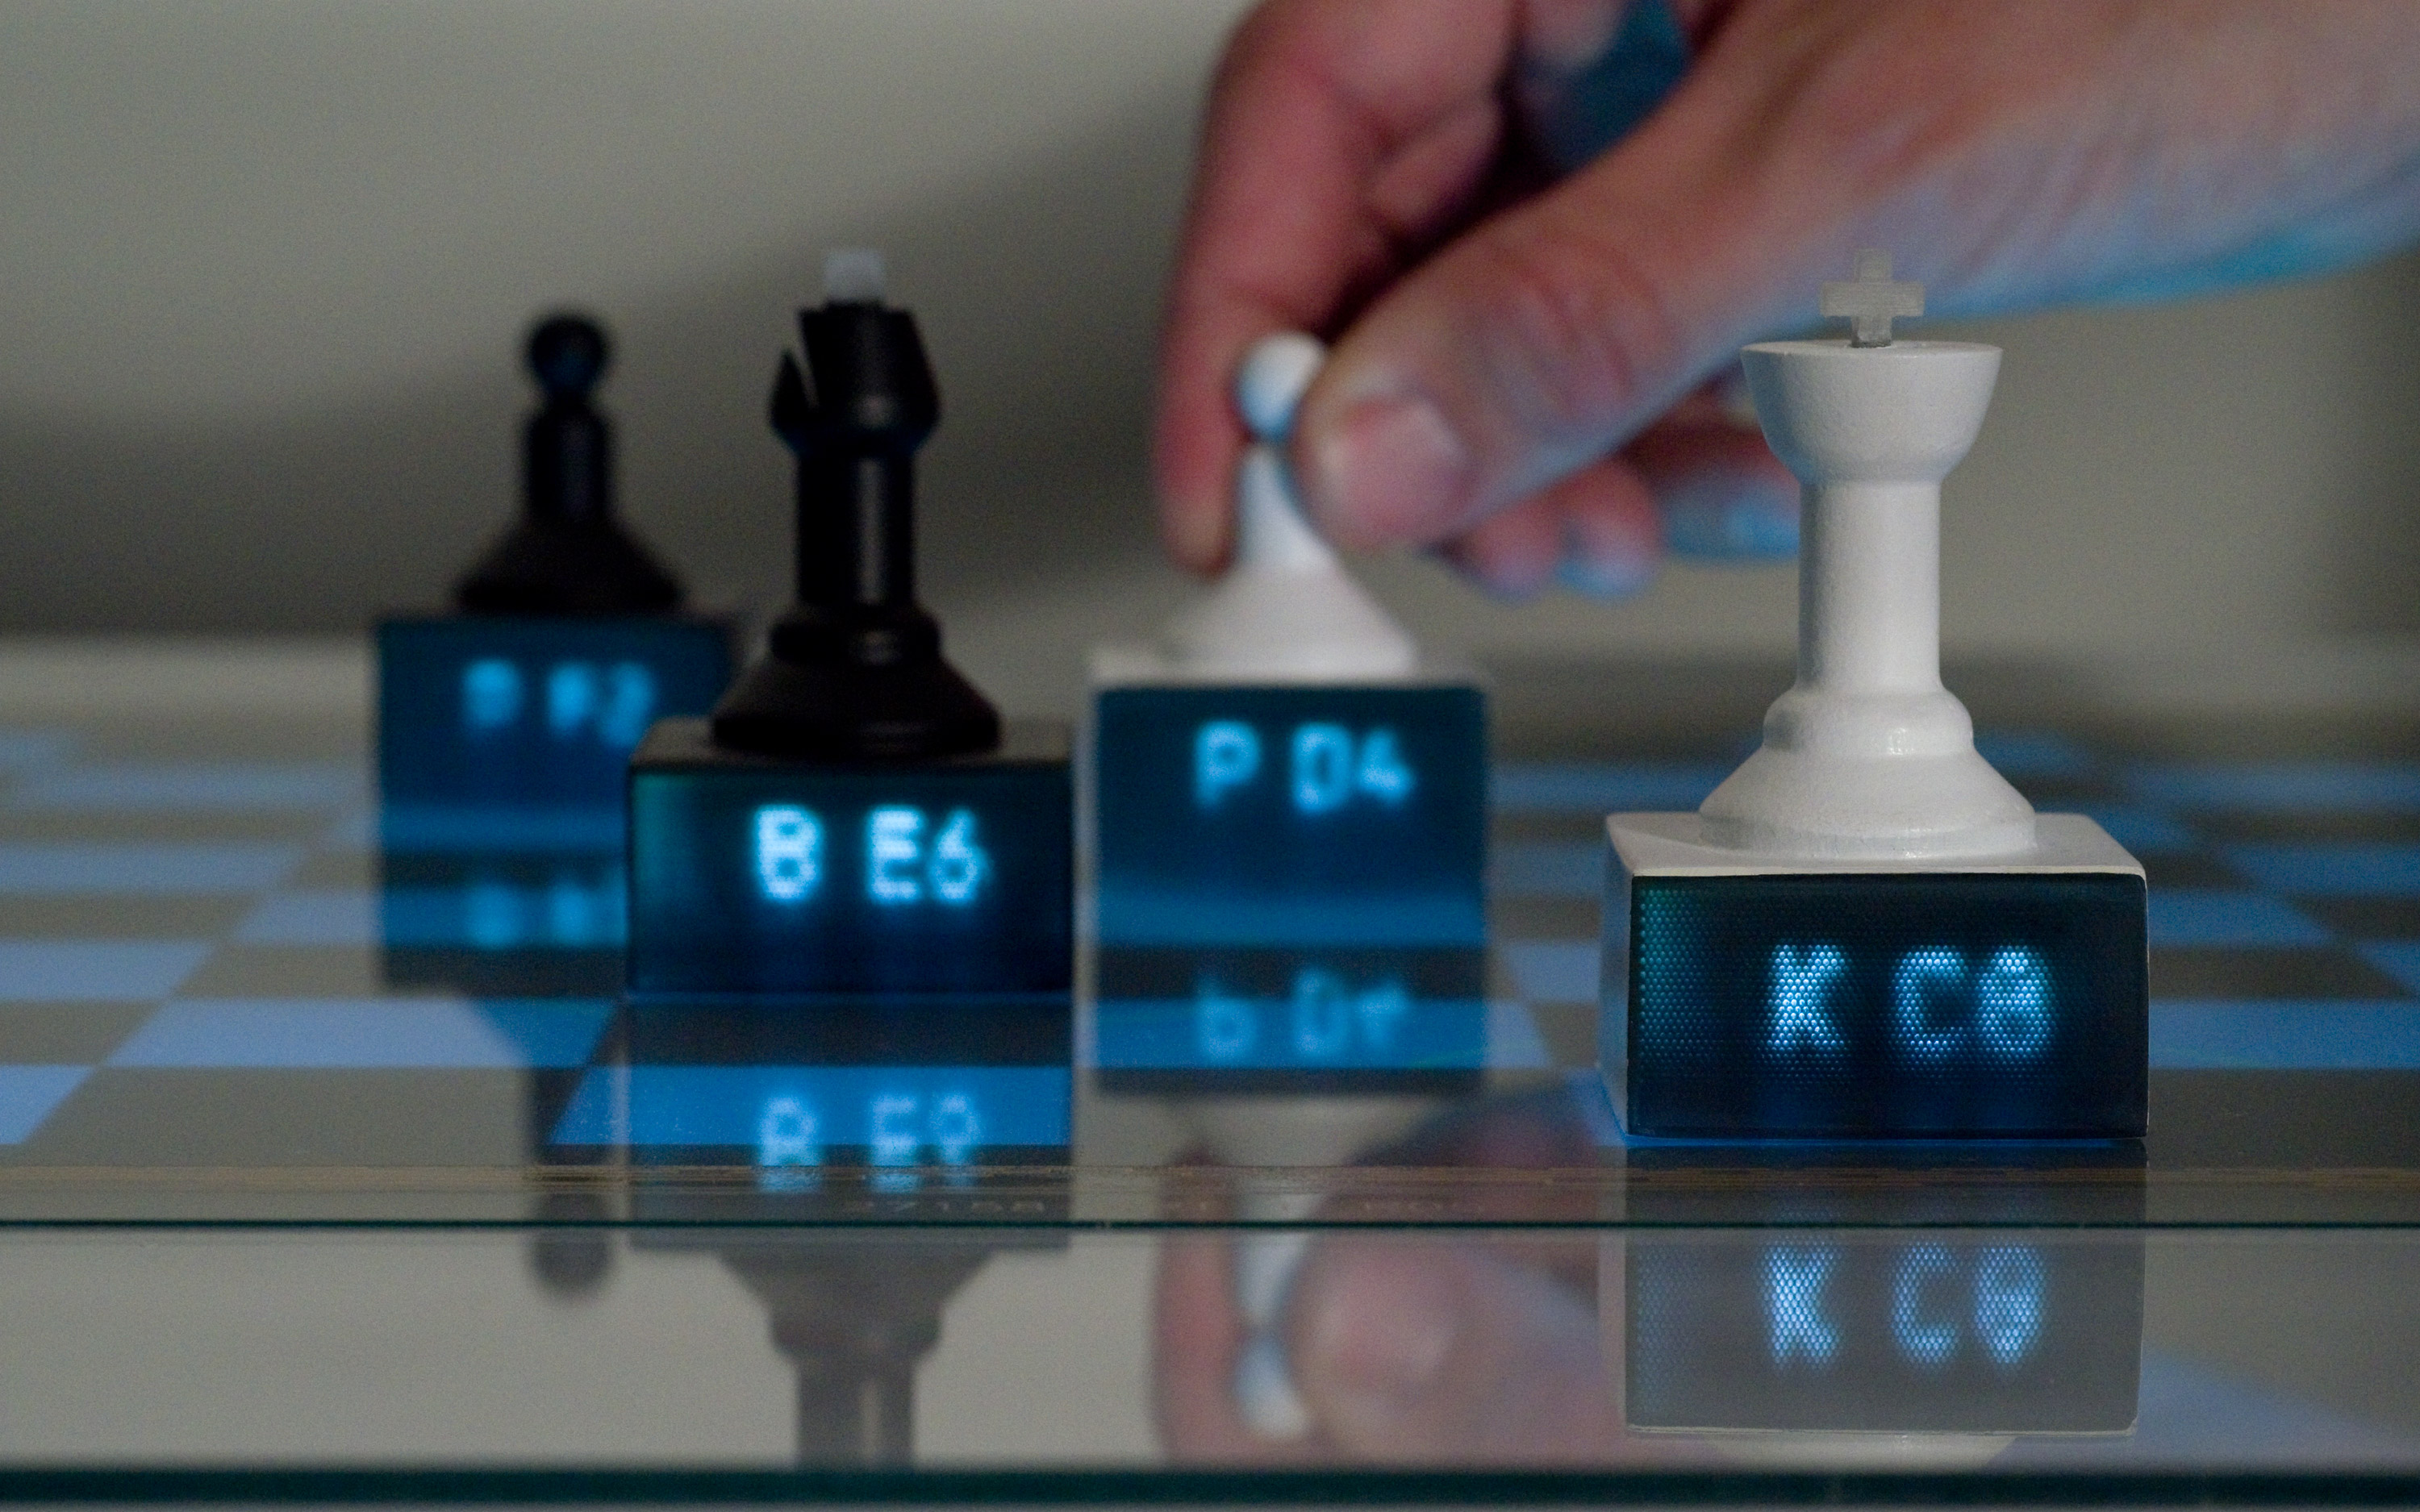 Chess pieces with embedded light pipes display content piped from an